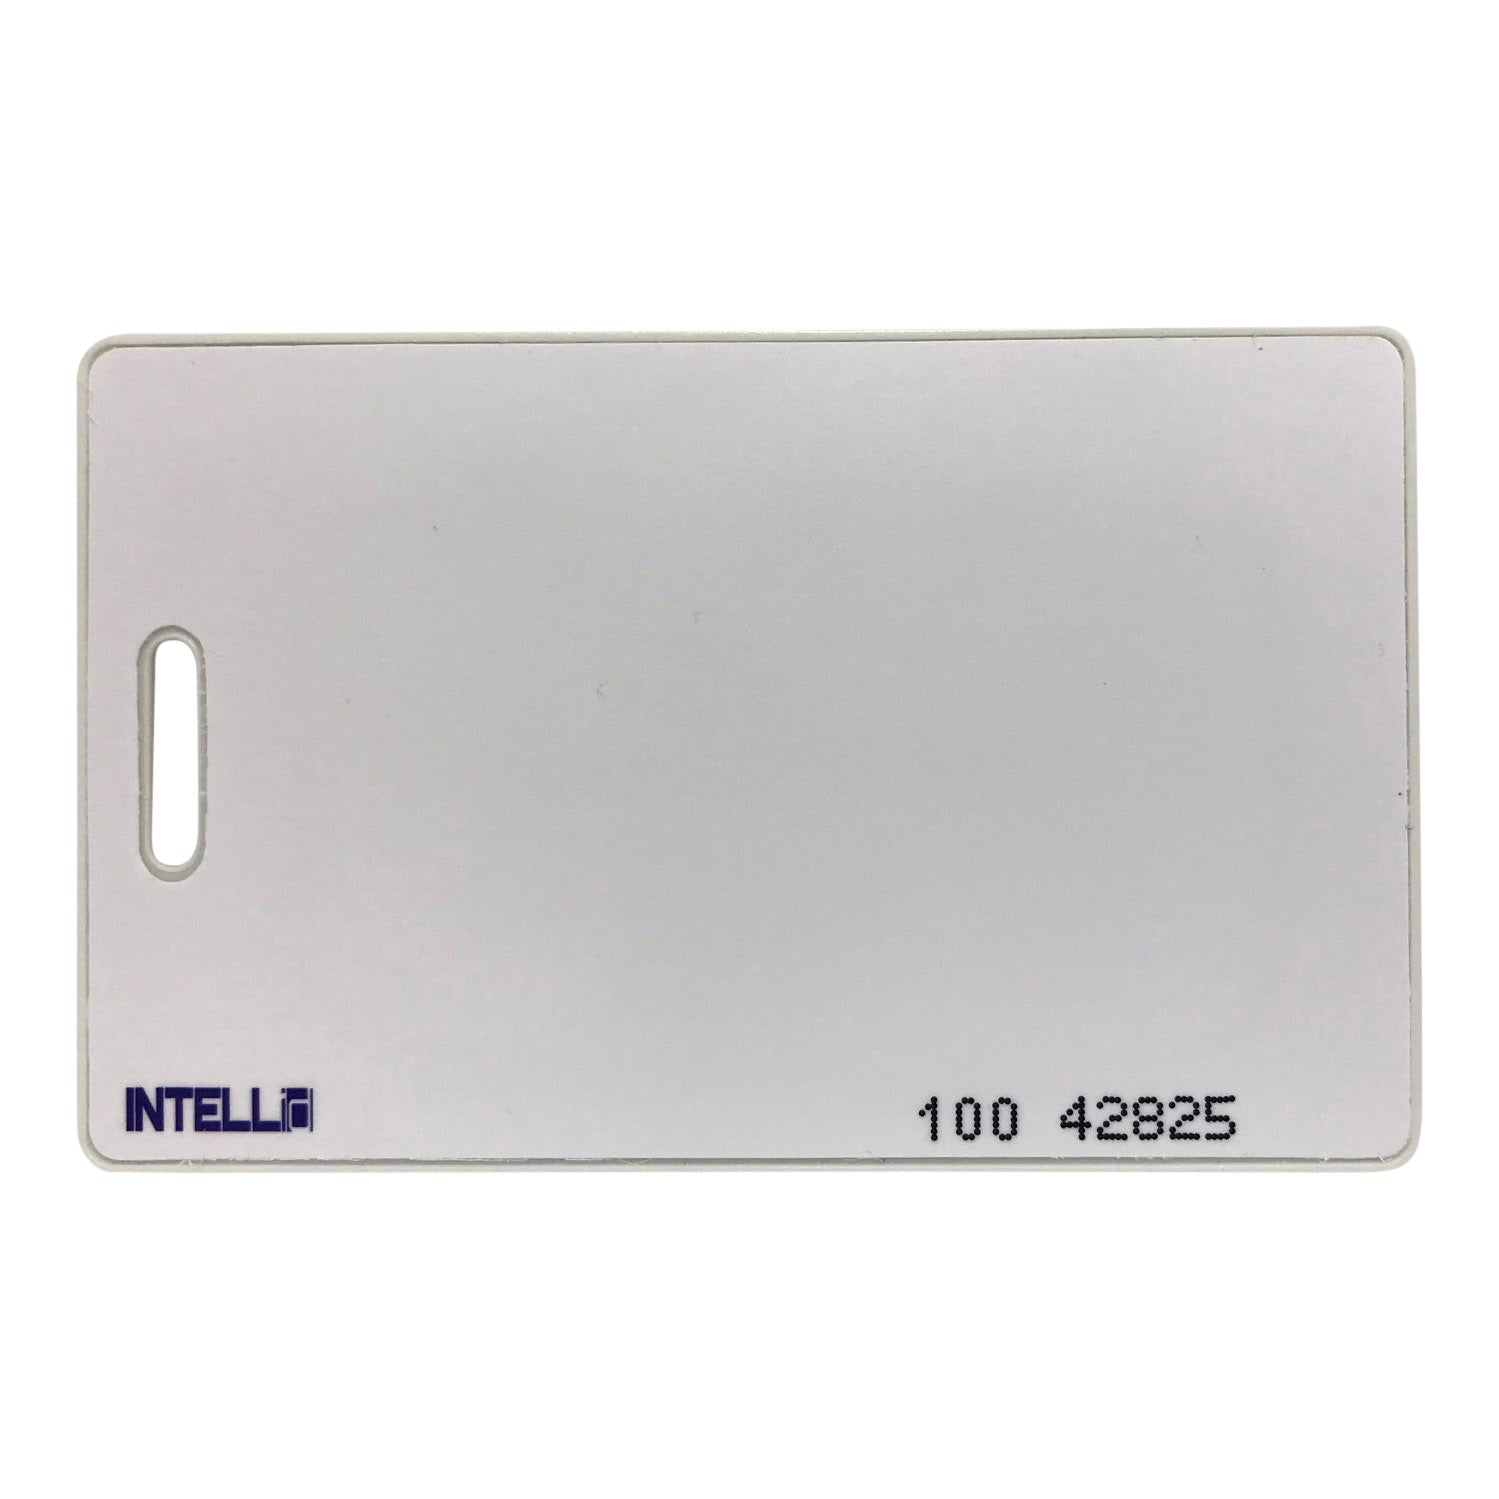 50 pcs 26 Bit Proximity Clamshell Weigand Proximity Cards (Custom FC 11)